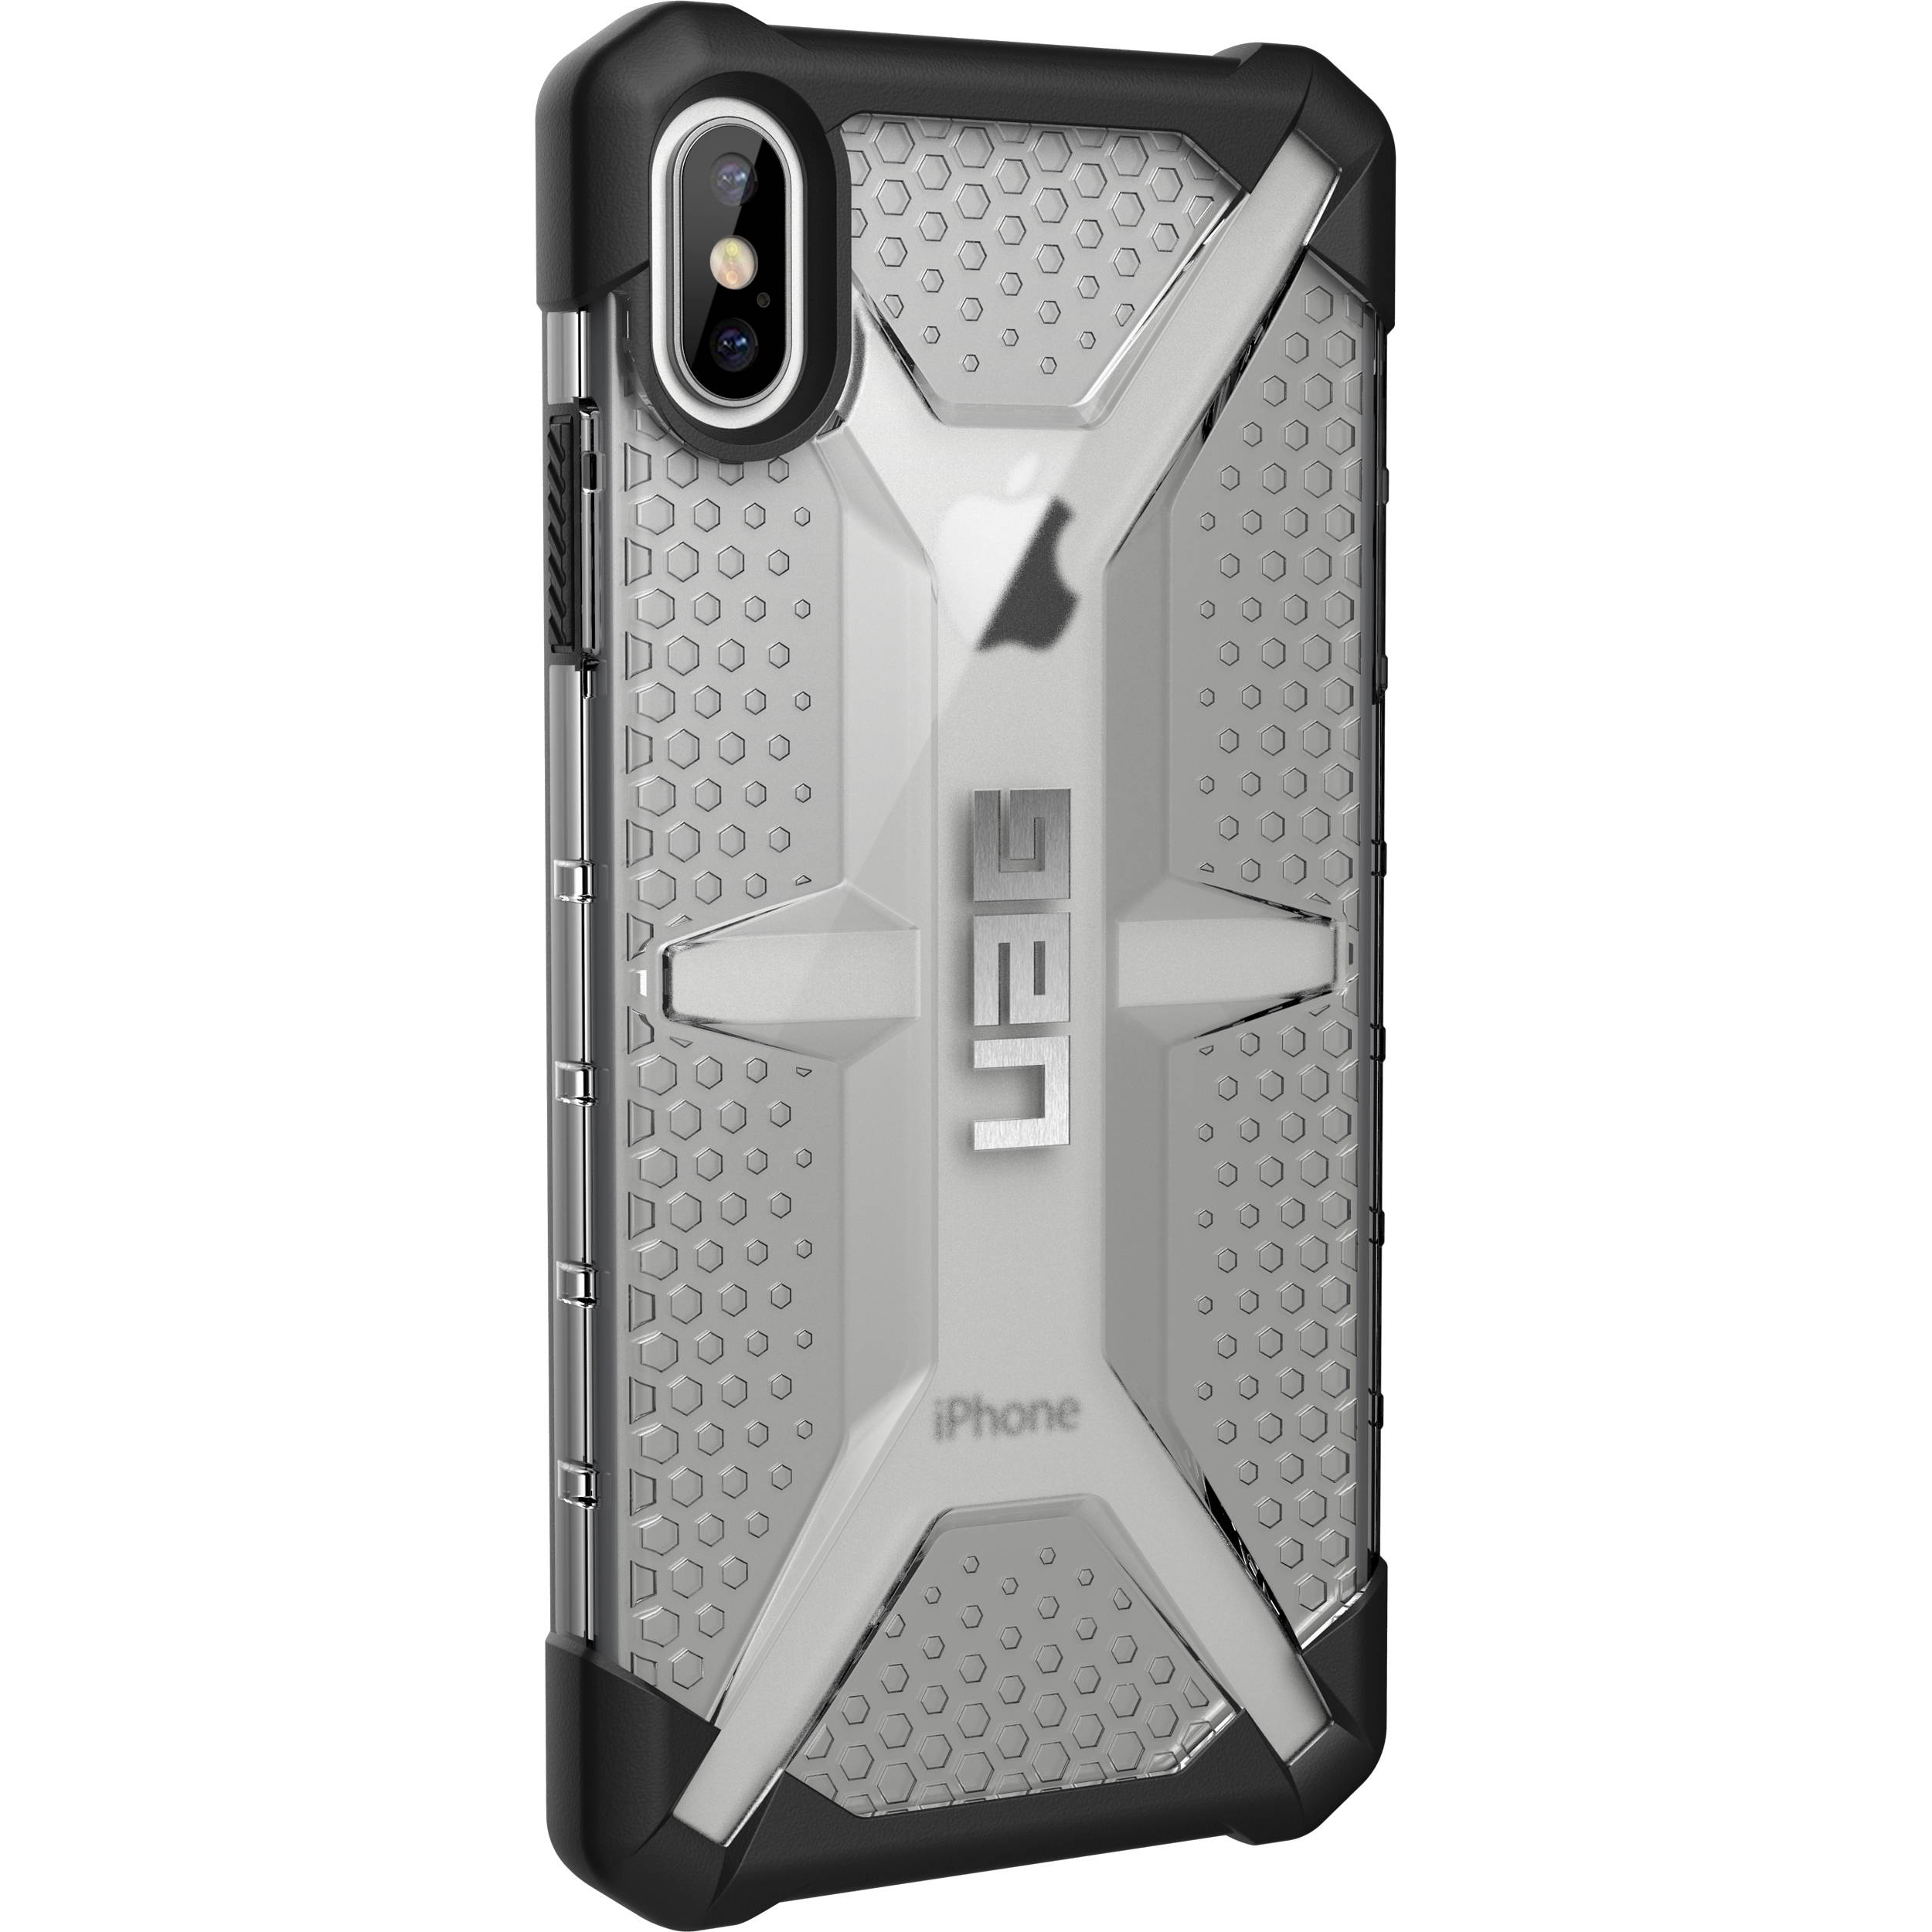 separation shoes 7b5ed 67302 Plasma Series Case for iPhone Xs Max (Ice)